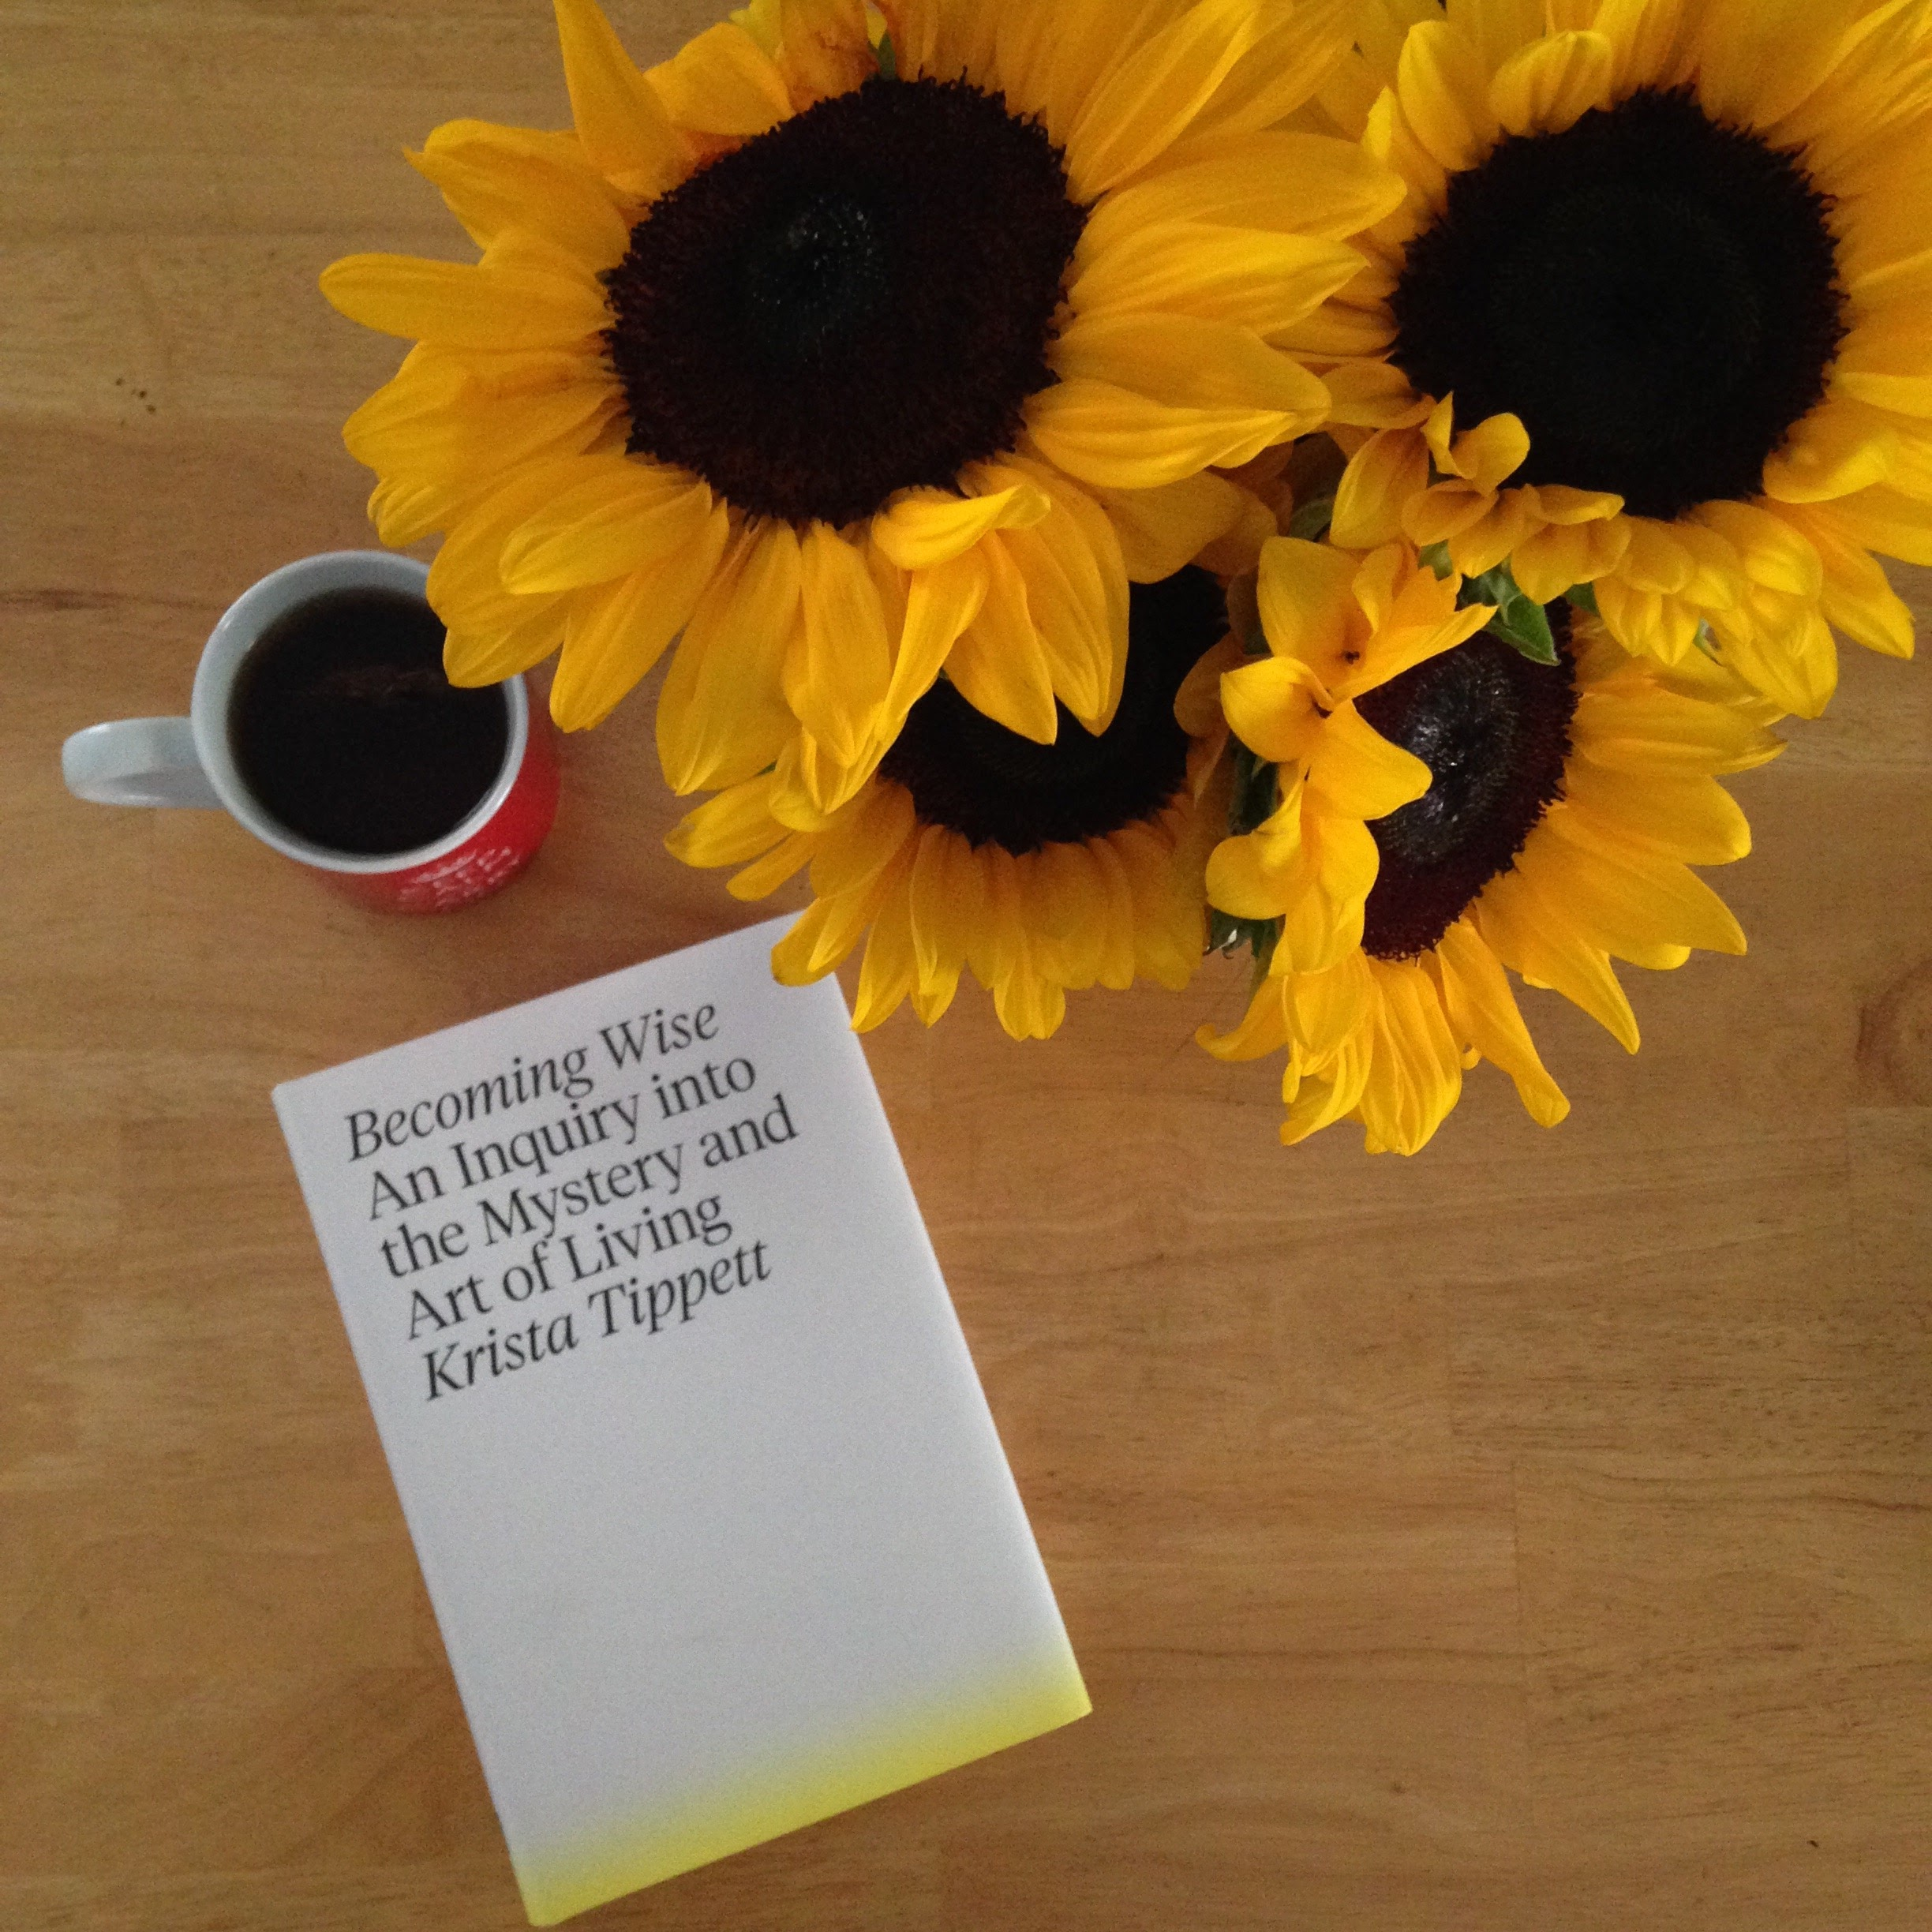 becoming wise book sunflowers tea